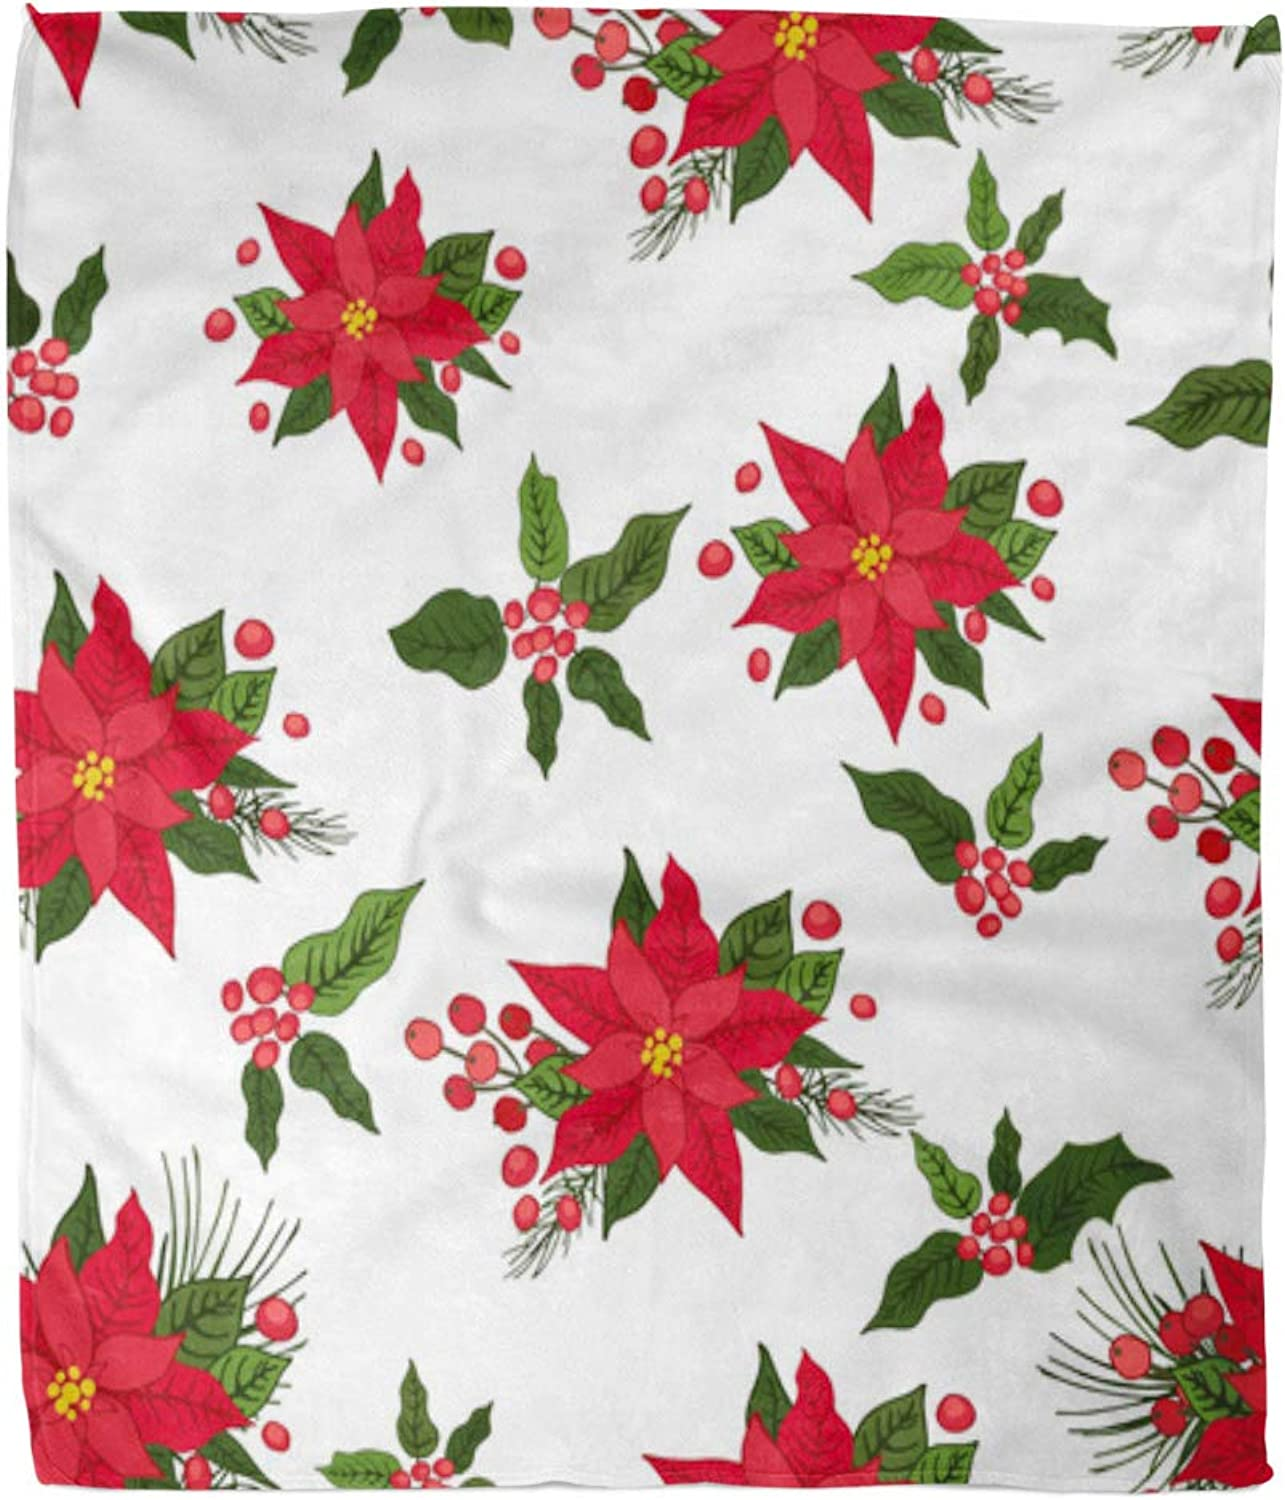 Emvency Throw Blanket Warm Cozy Print Flannel Green Pattern Christmas Poinsettia Flowers Holly Pine for New Year Red Drawing Comfortable Soft for Bed Sofa and Couch 50x60 Inches